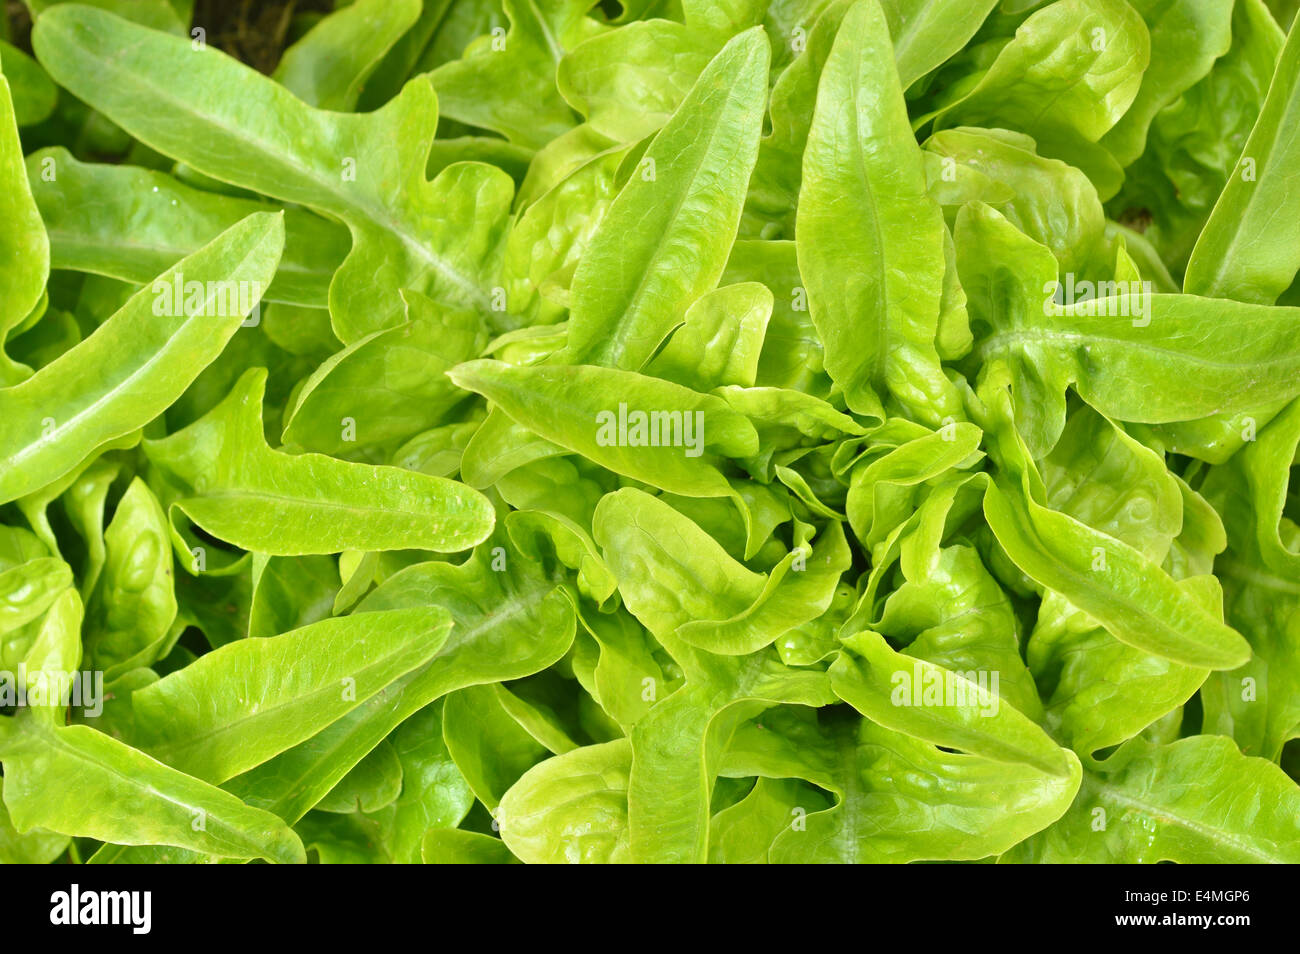 Close-up of green, fresh oakleaf lettuce DUBACEK (Lactuca sativa). Top view rosette of lobate leaves. Garden background. - Stock Image